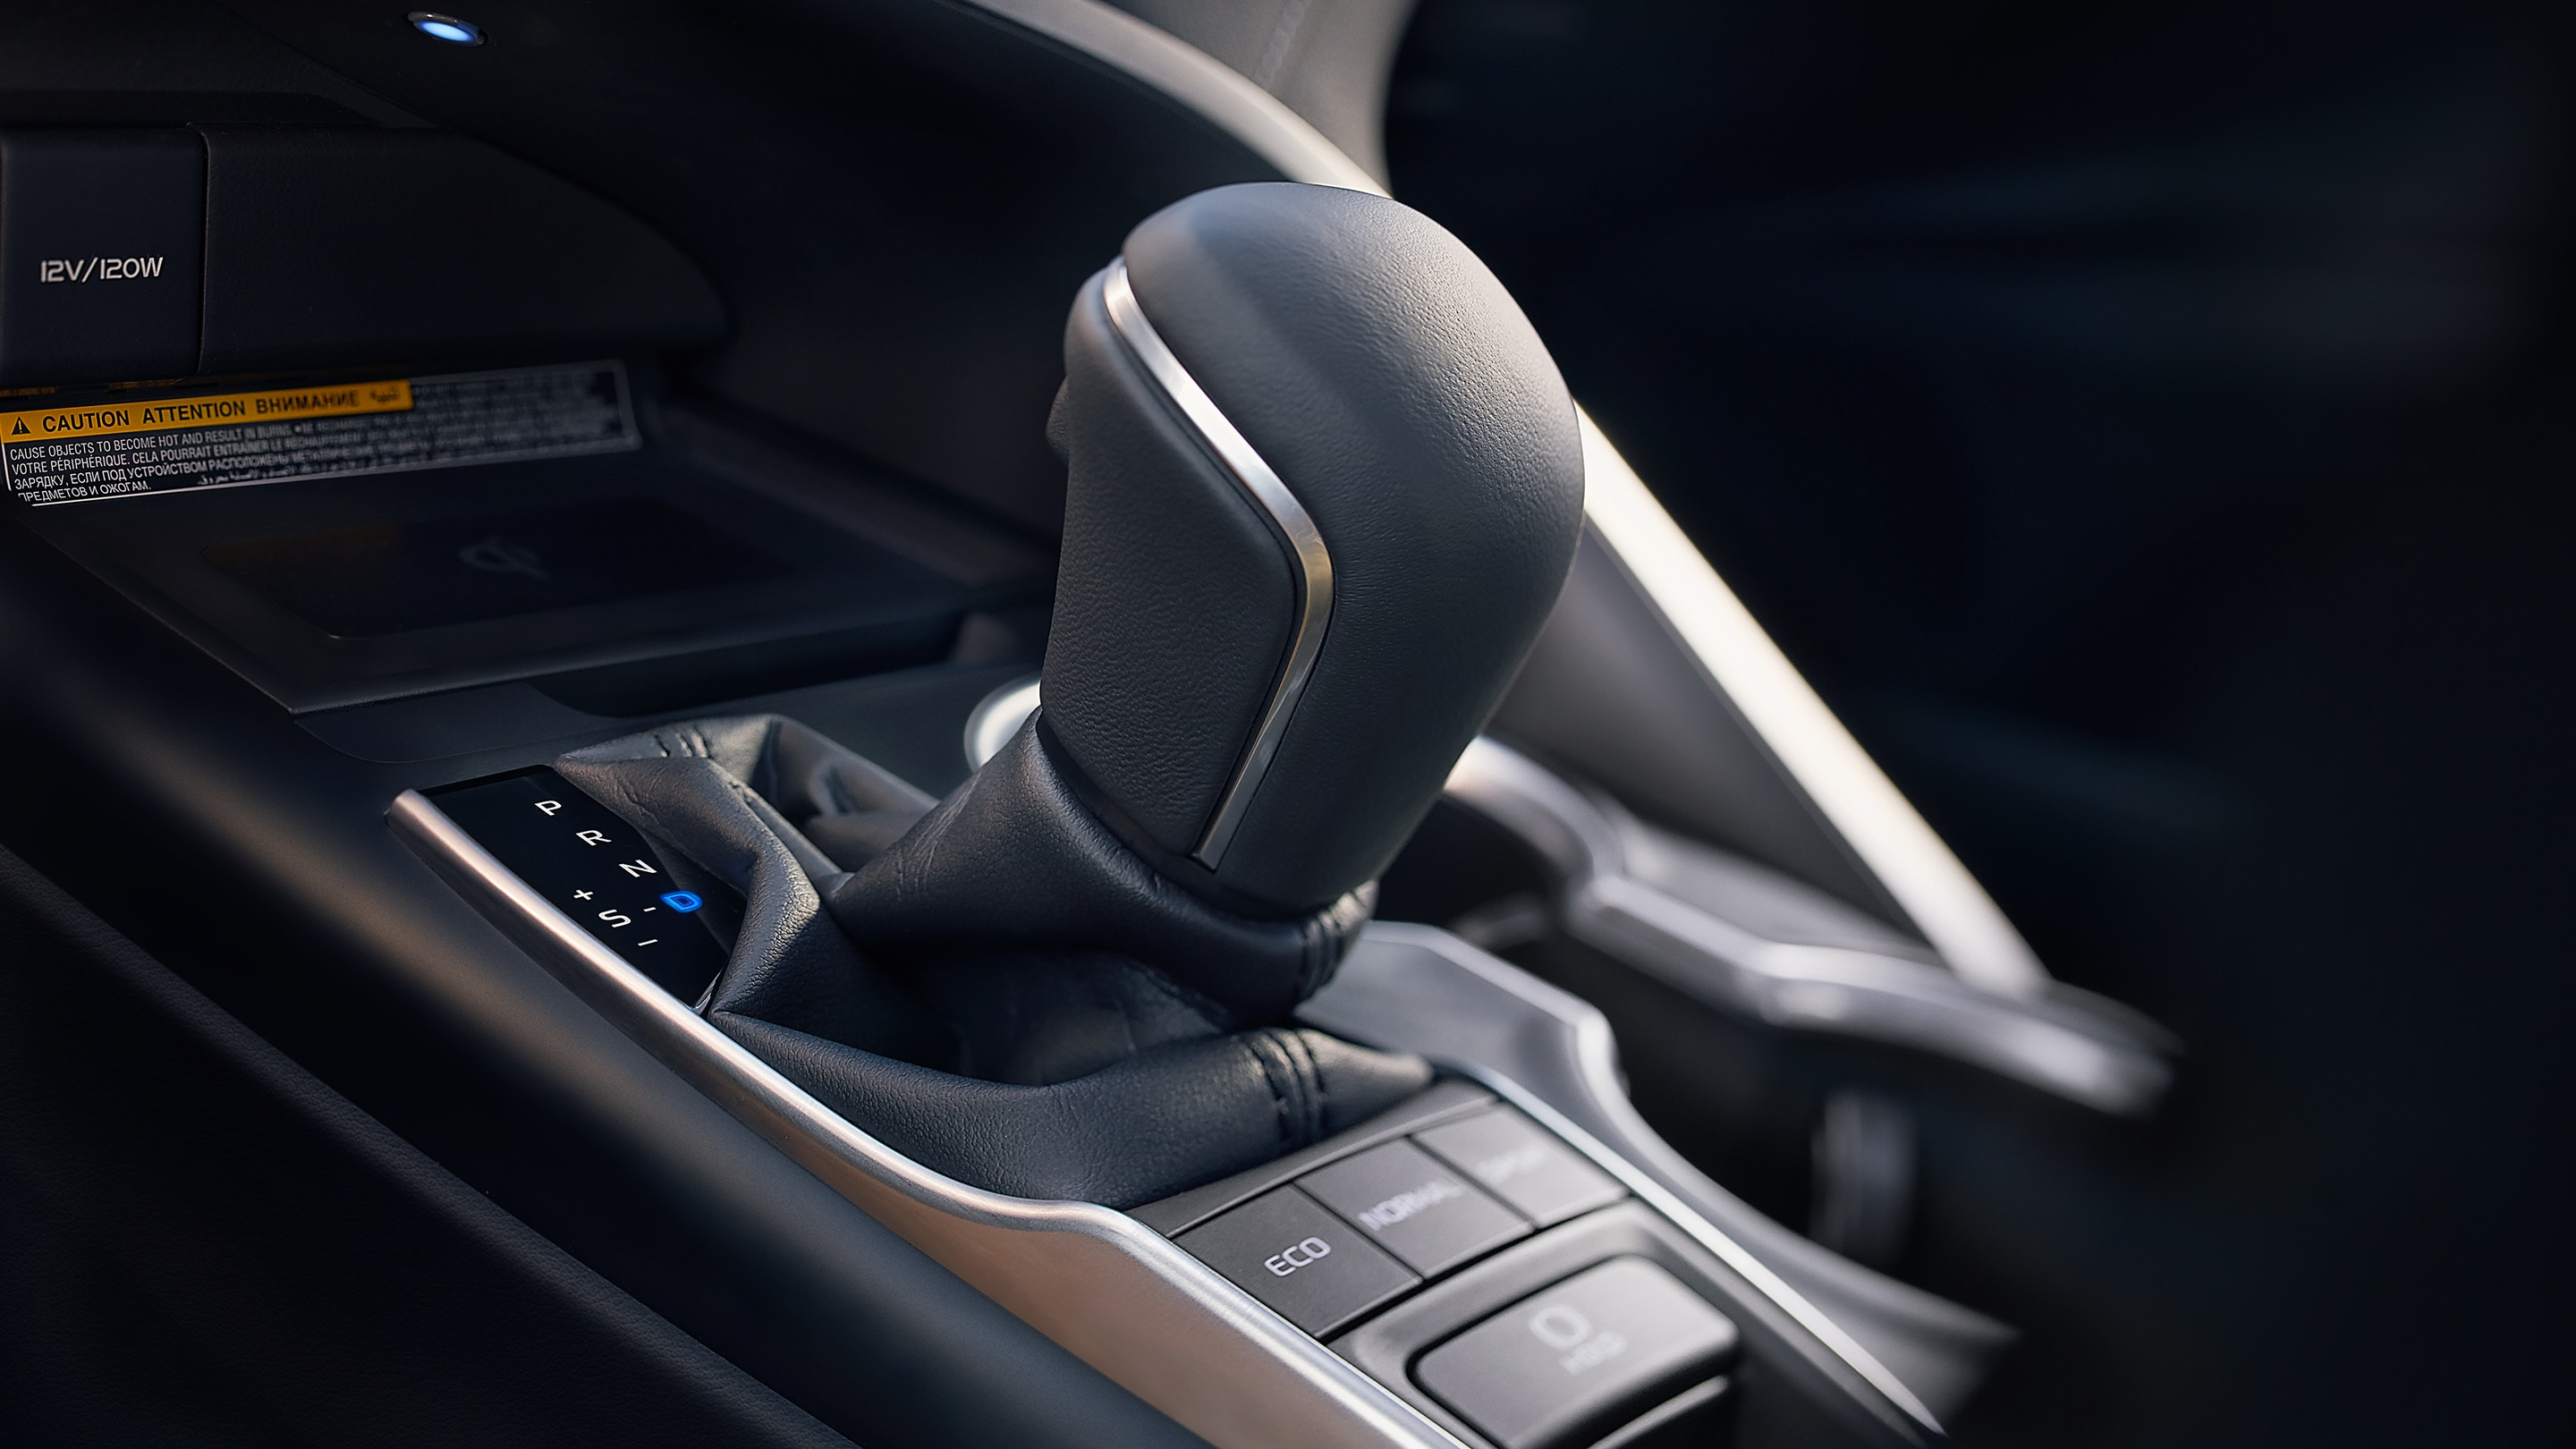 Cruise Around in Style in the 2019 Camry!